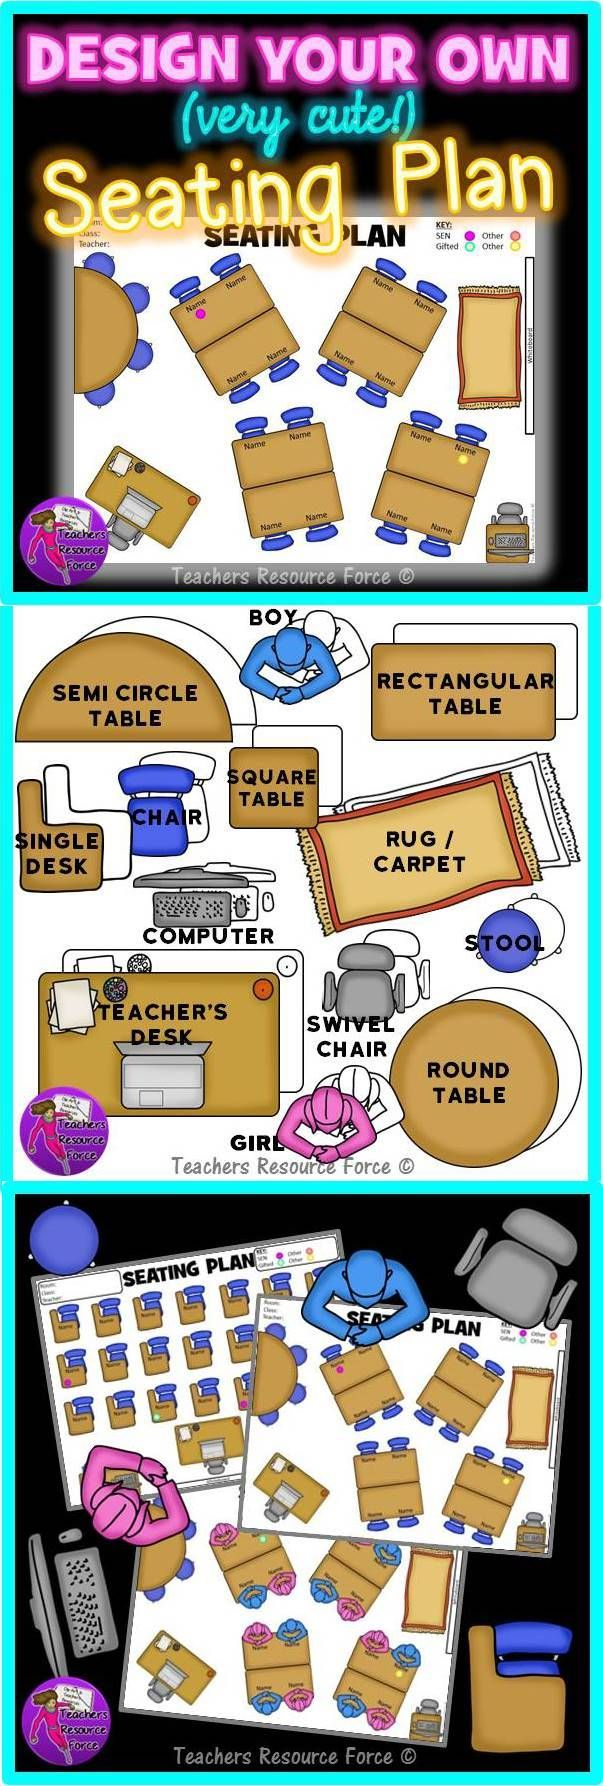 """Design your own seating plan! We teachers do like everything to look fabulous, don't we! Why then, do our seating charts consist of boring rectangles most of the time!? Frustrated by the dull look of seating plans and uninspired shapes we have to work with, I decided to make my own """"build your own interactive seating plan"""" that is realistic, very cute and can be customized to ANY classroom!"""